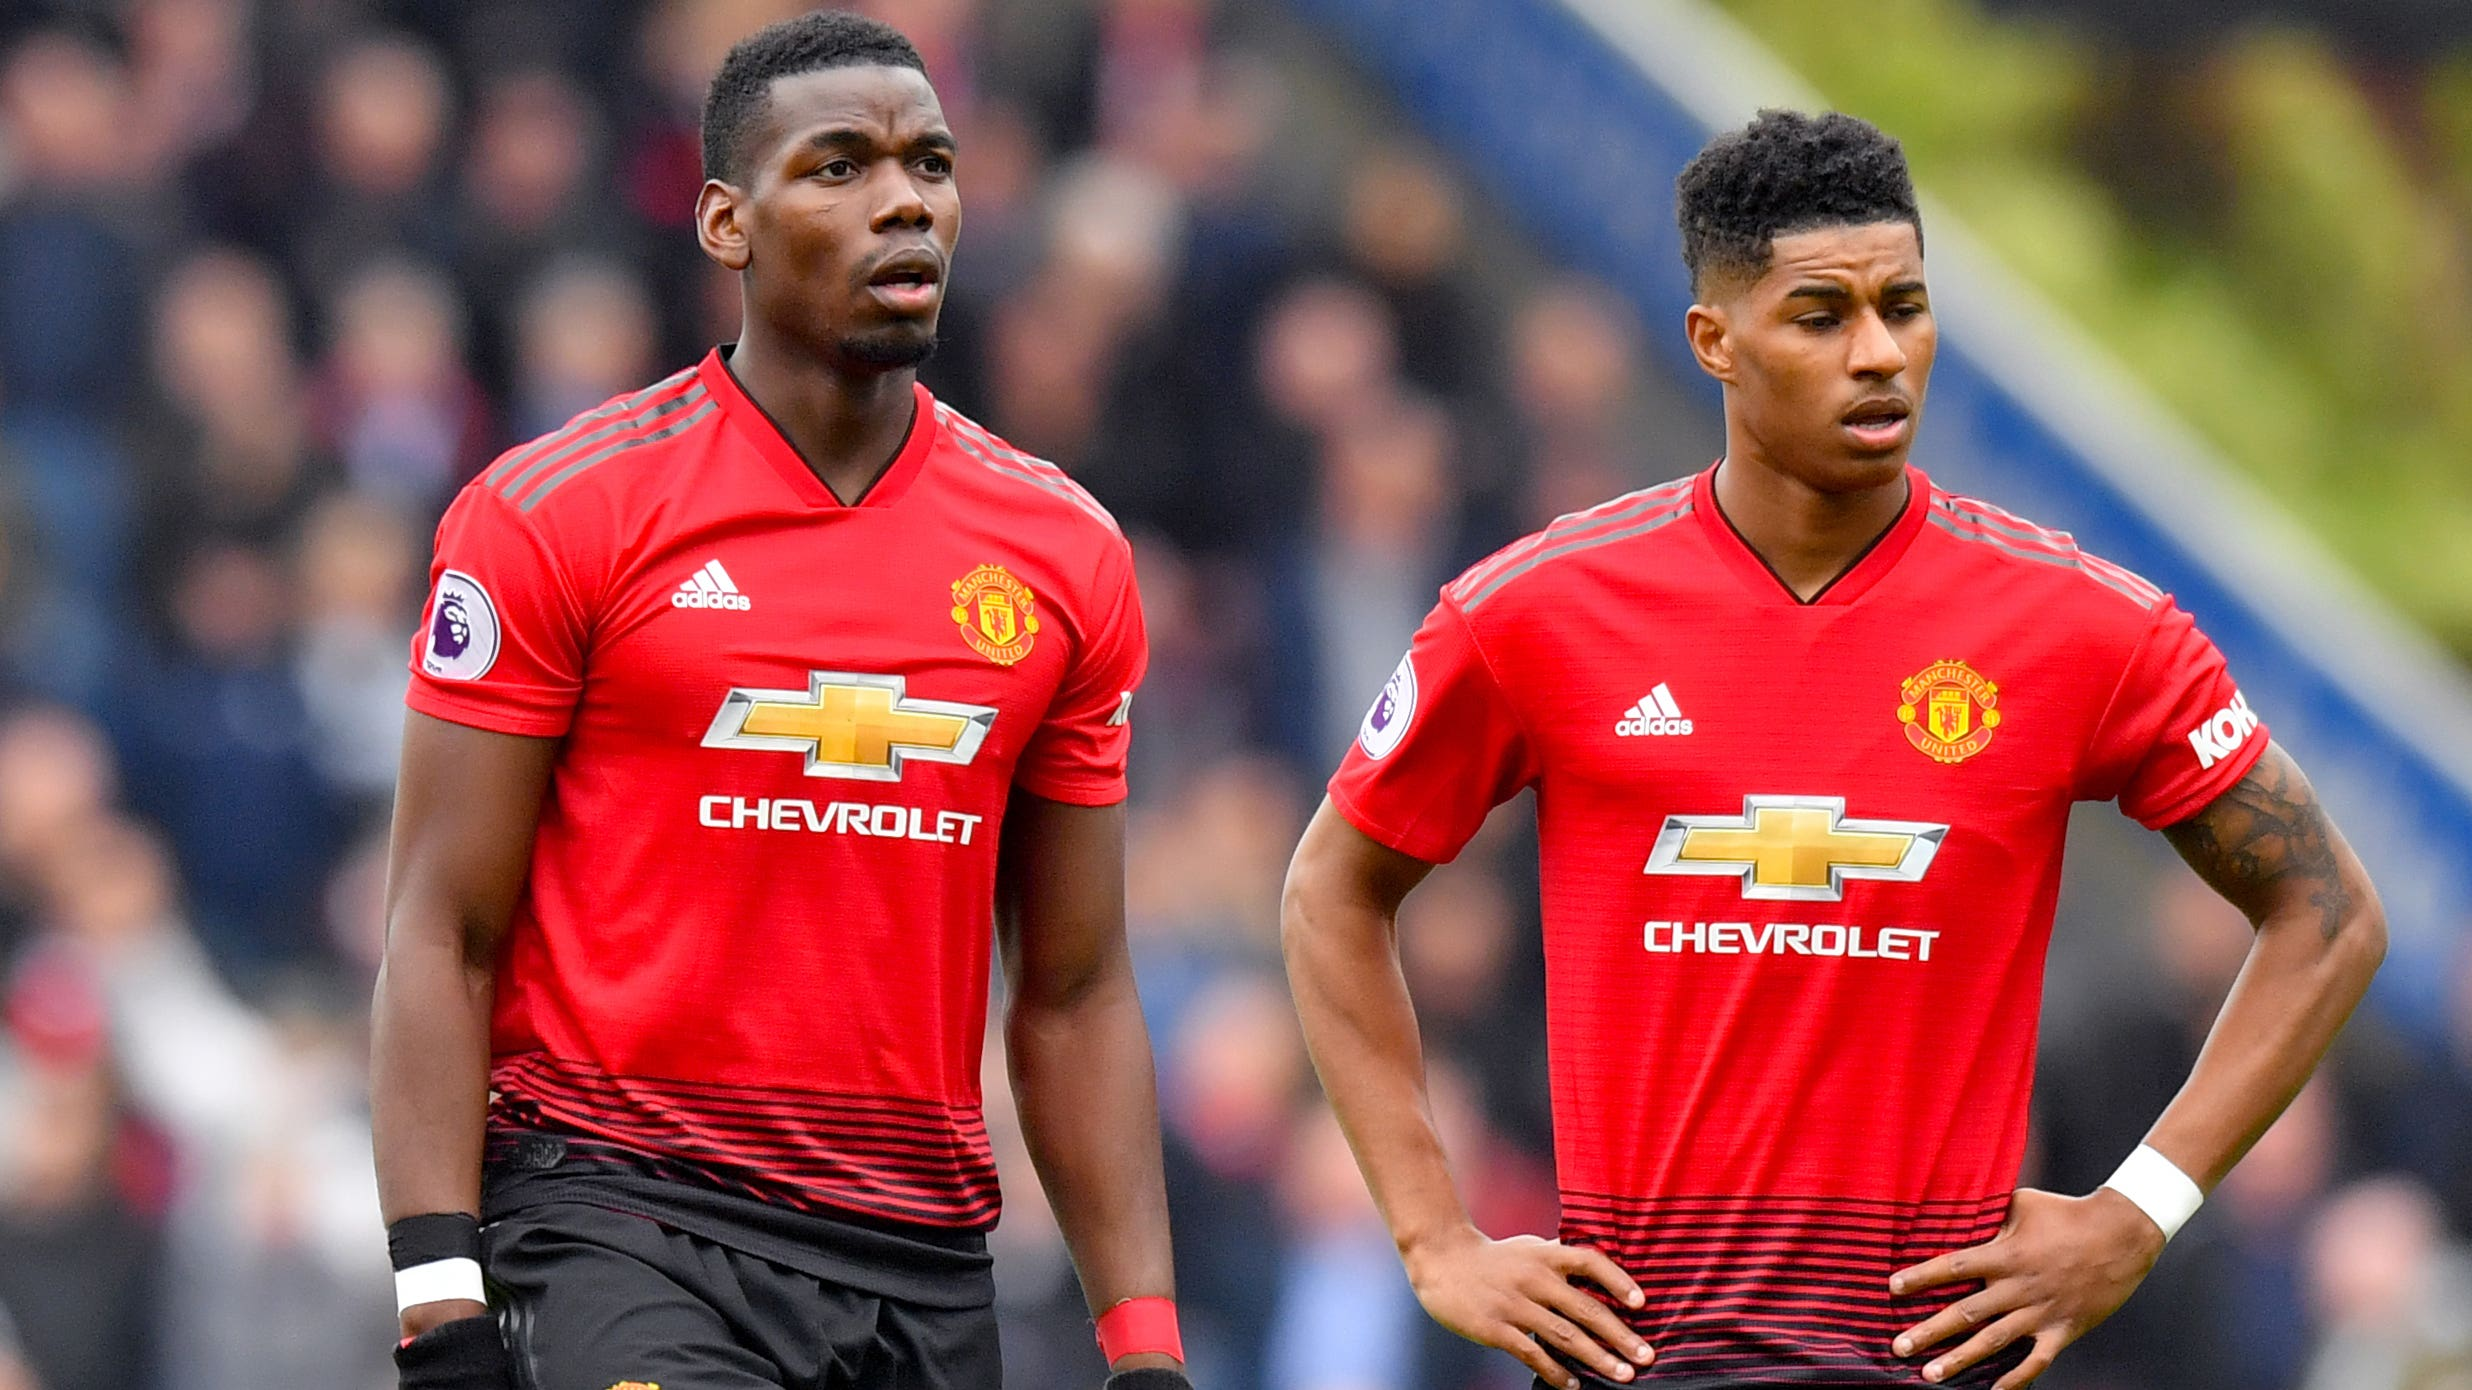 Marcus Rashford And Paul Pogba Join Calls For Change After George Floyd Death Bt Sport